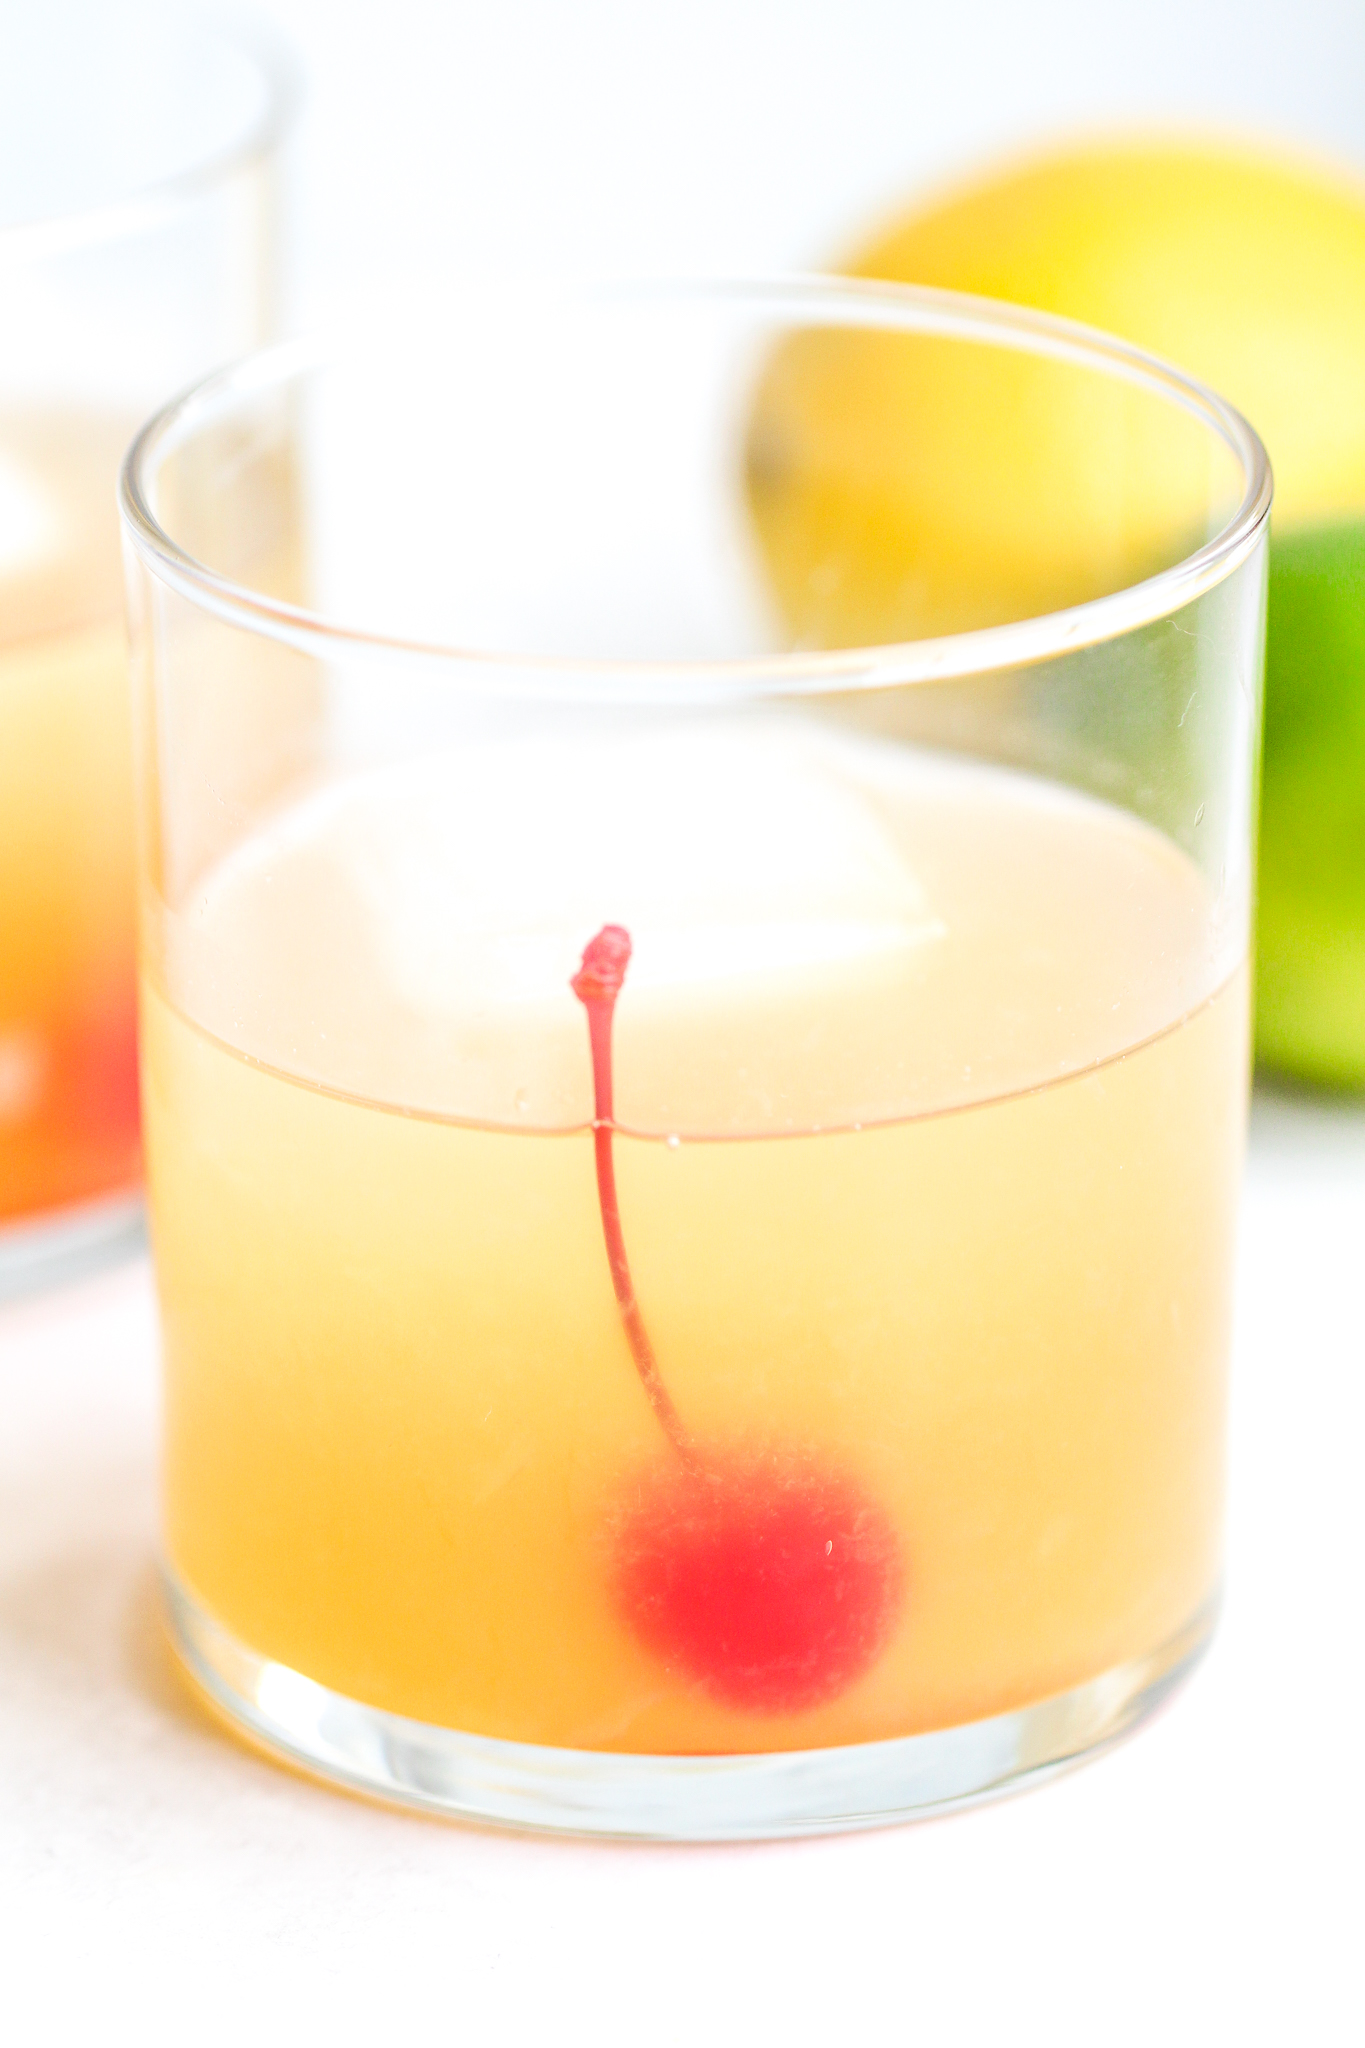 clear cocktail glass filled with a classic whiskey sour and a maraschino cherry inside